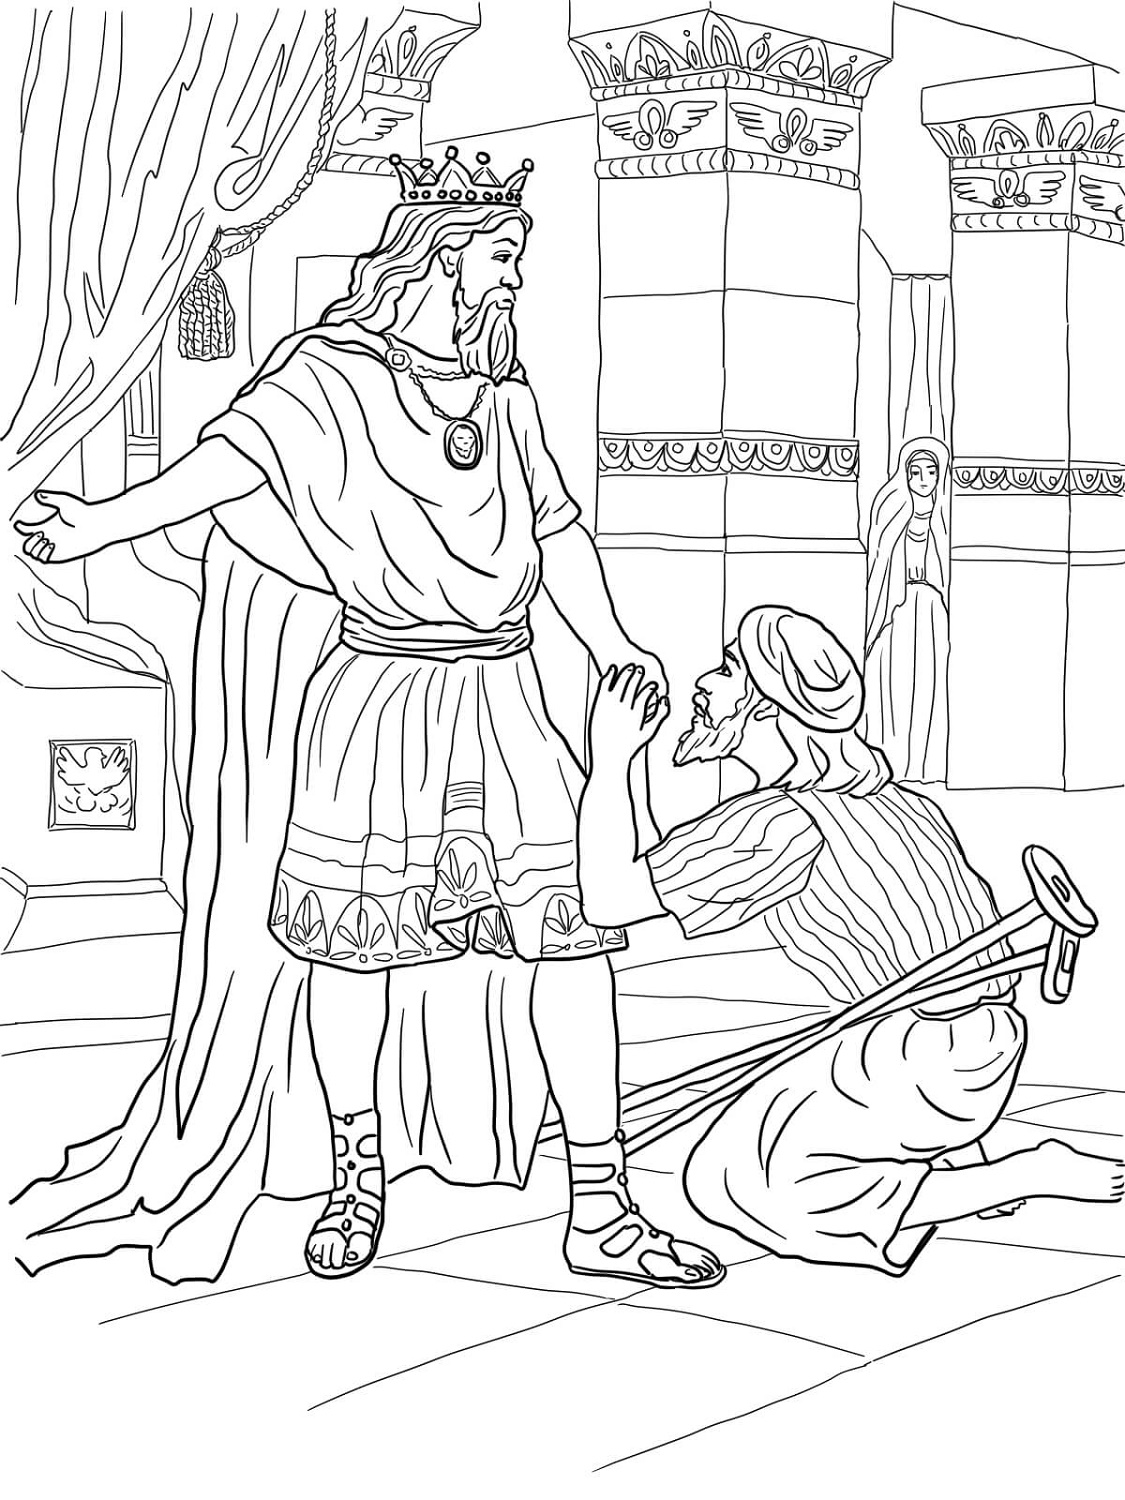 King David Coloring Pages Printable